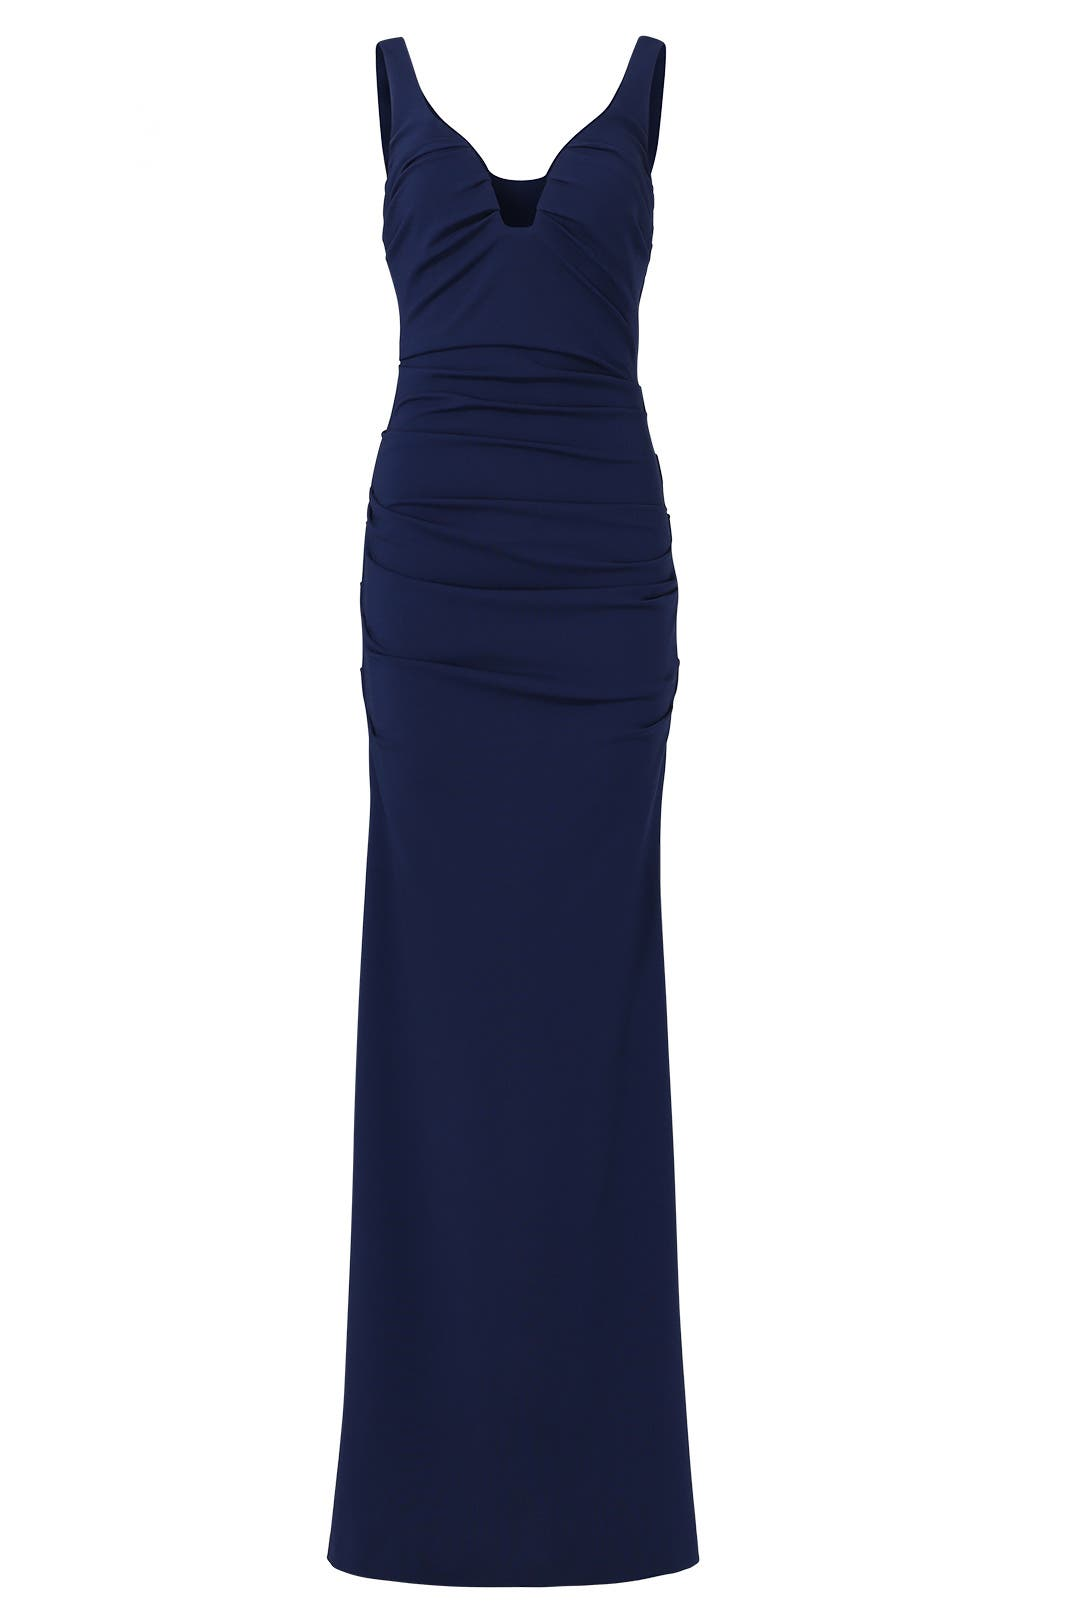 Navy Plunge Crepe Gown by Nicole Miller for $65 - $85 | Rent the Runway